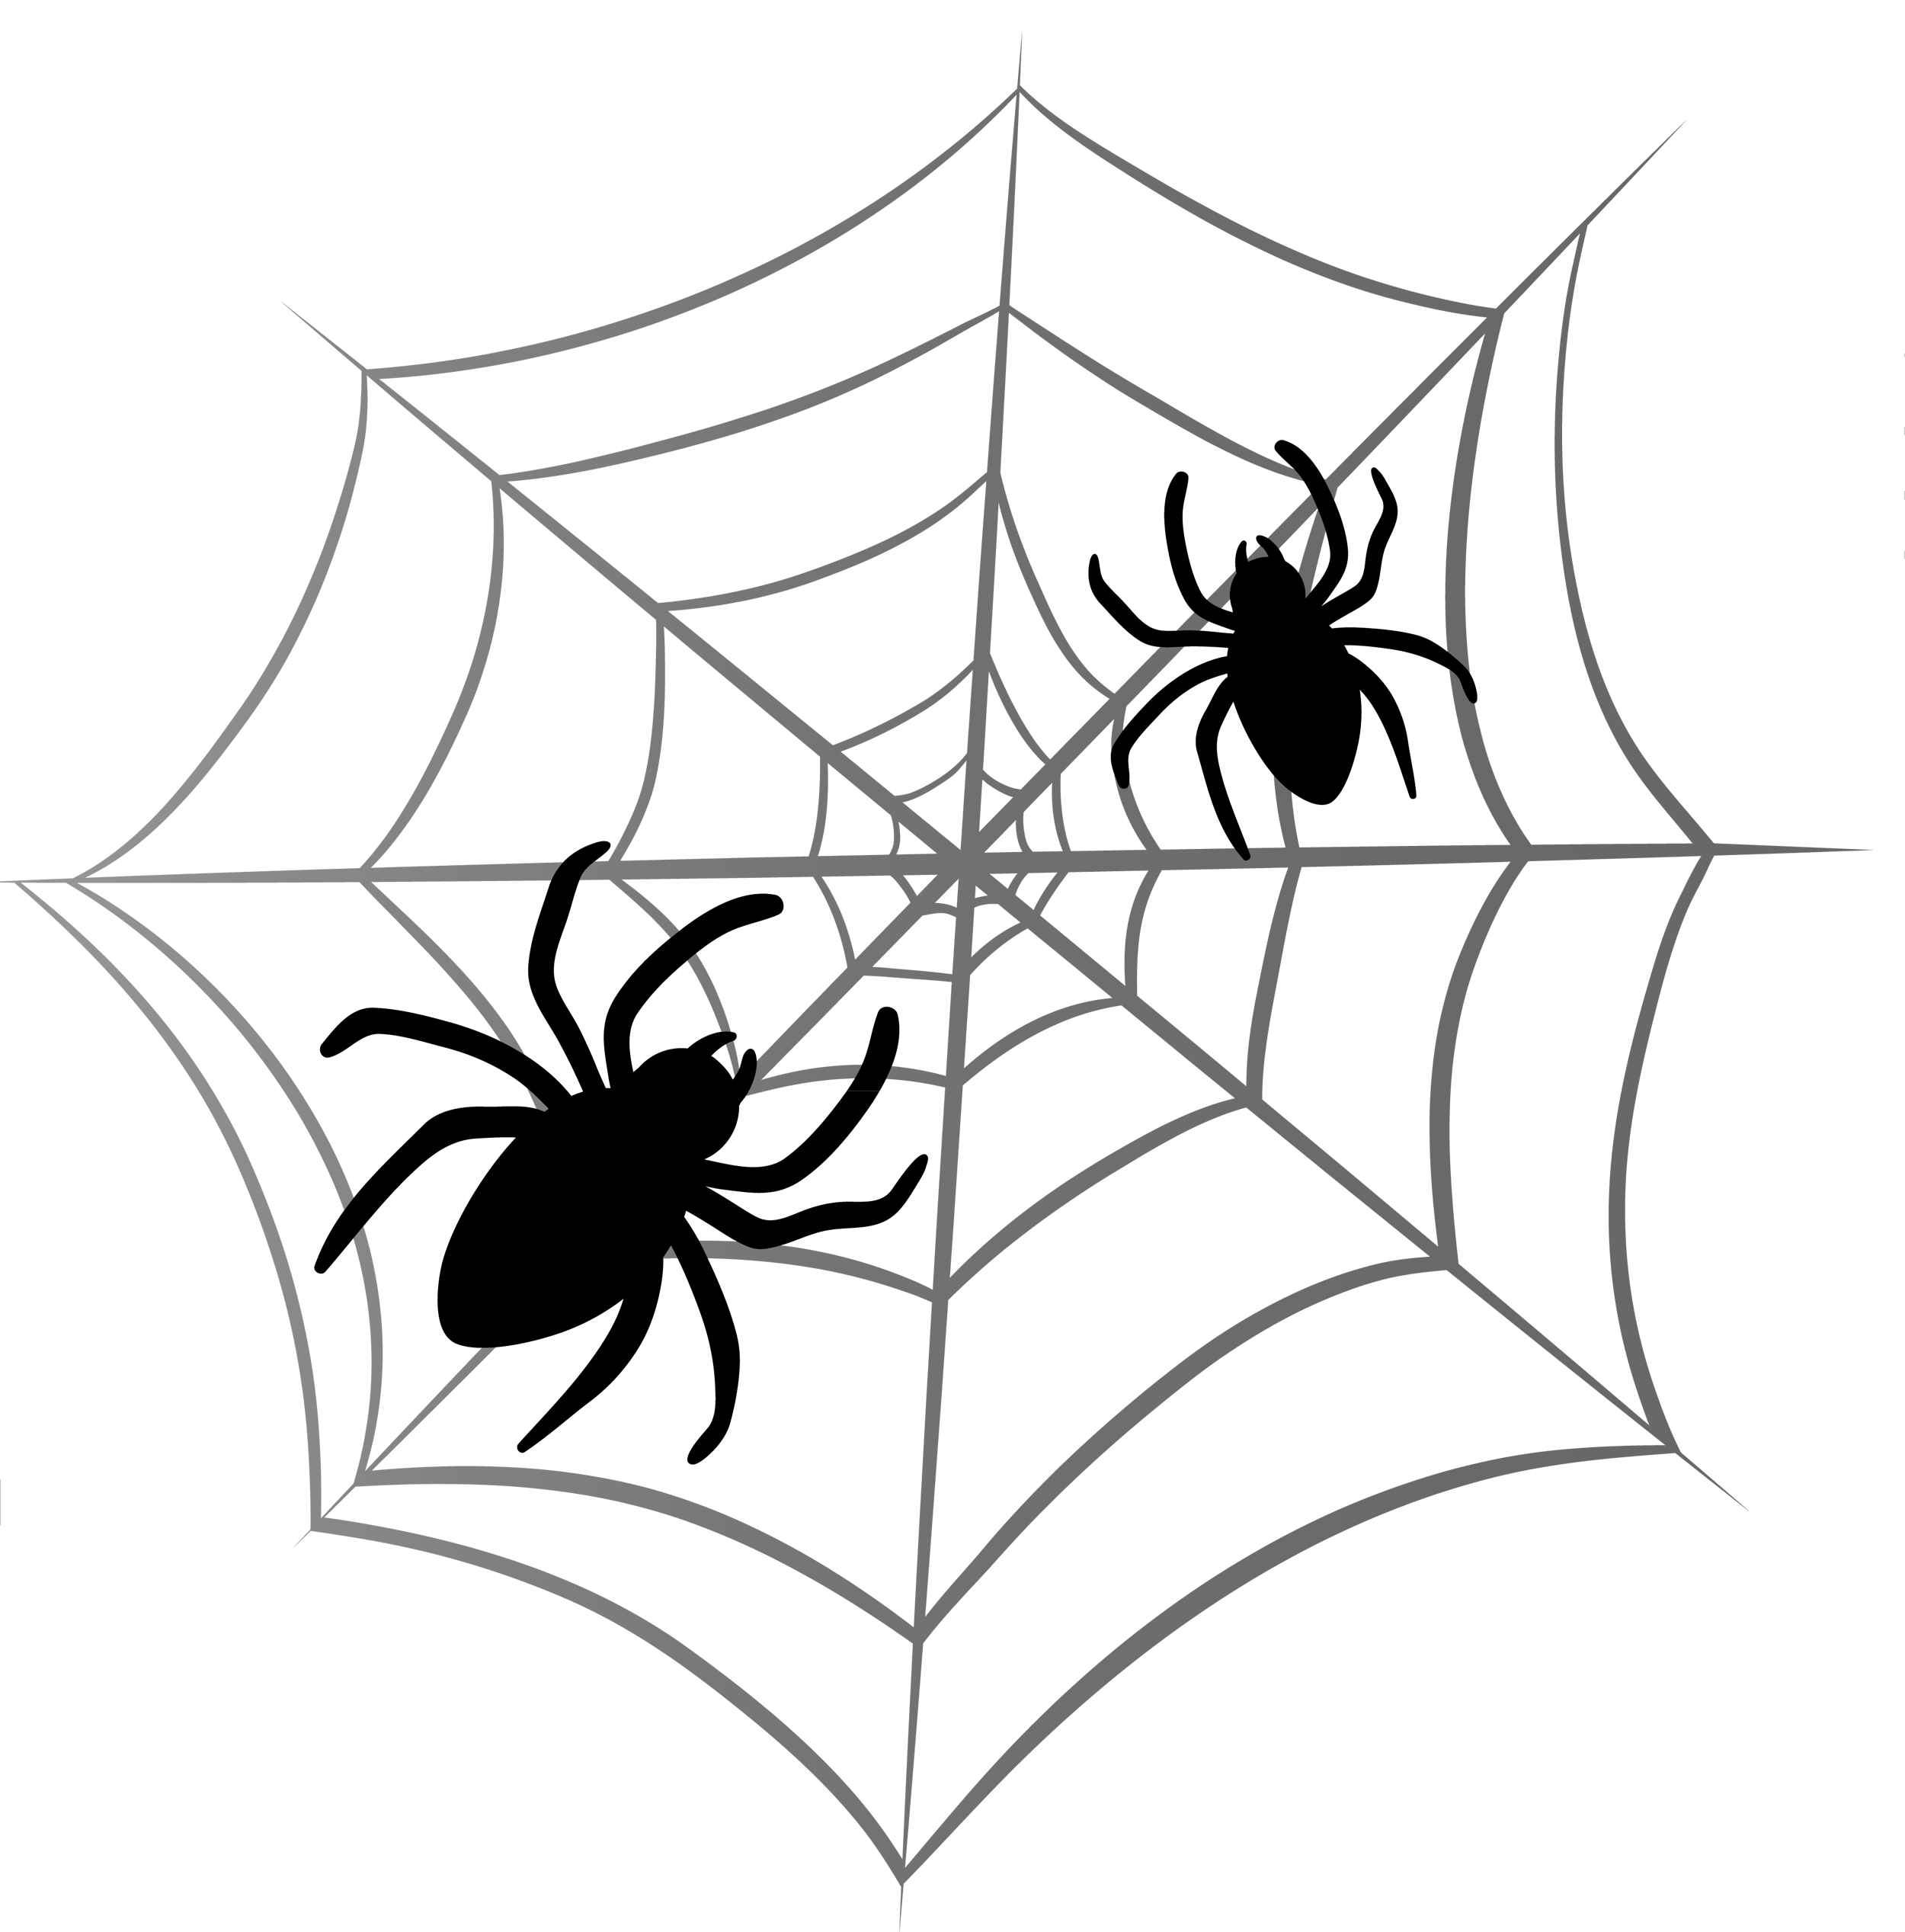 2500x2535 Halloween Spider Web Clipart 2 Clipartcow